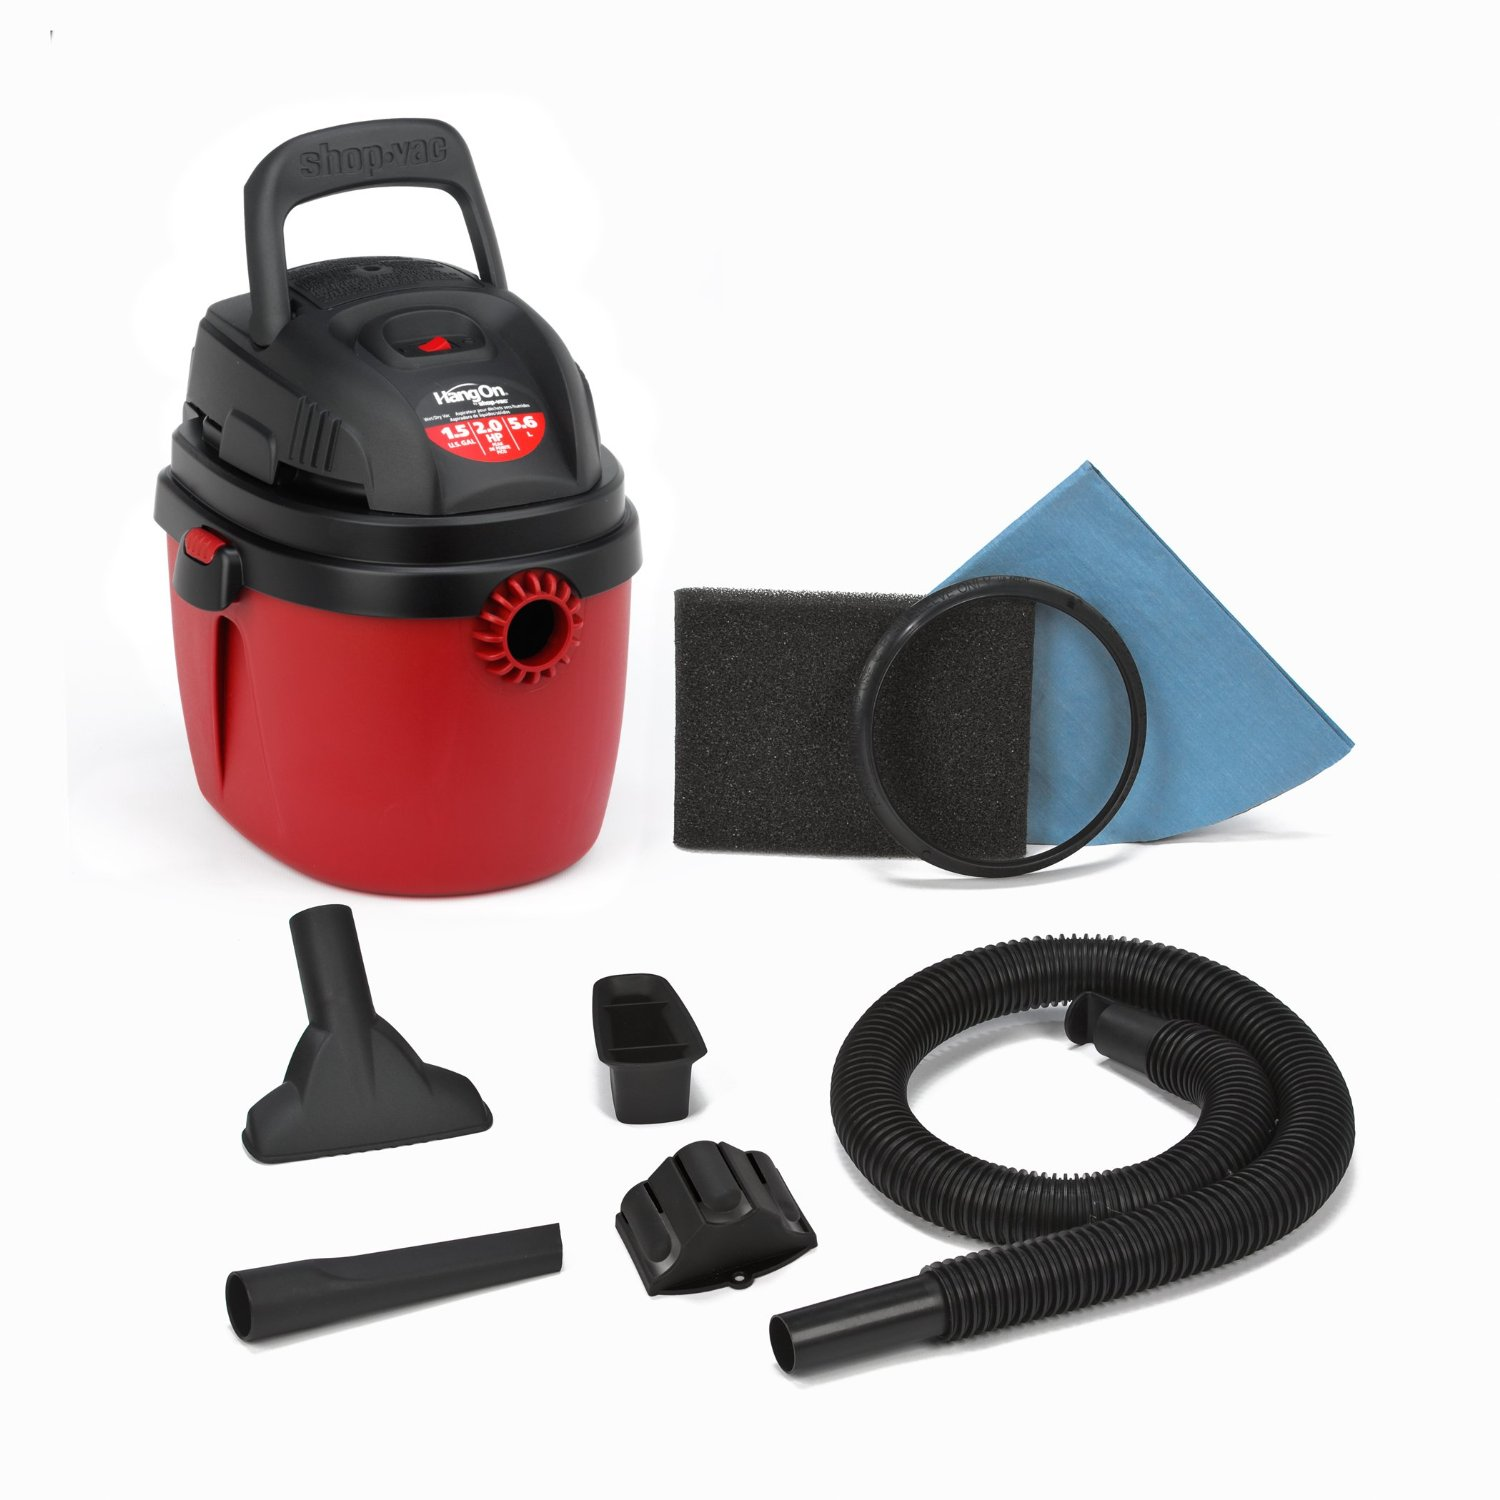 Shop Vac 2030100 Review